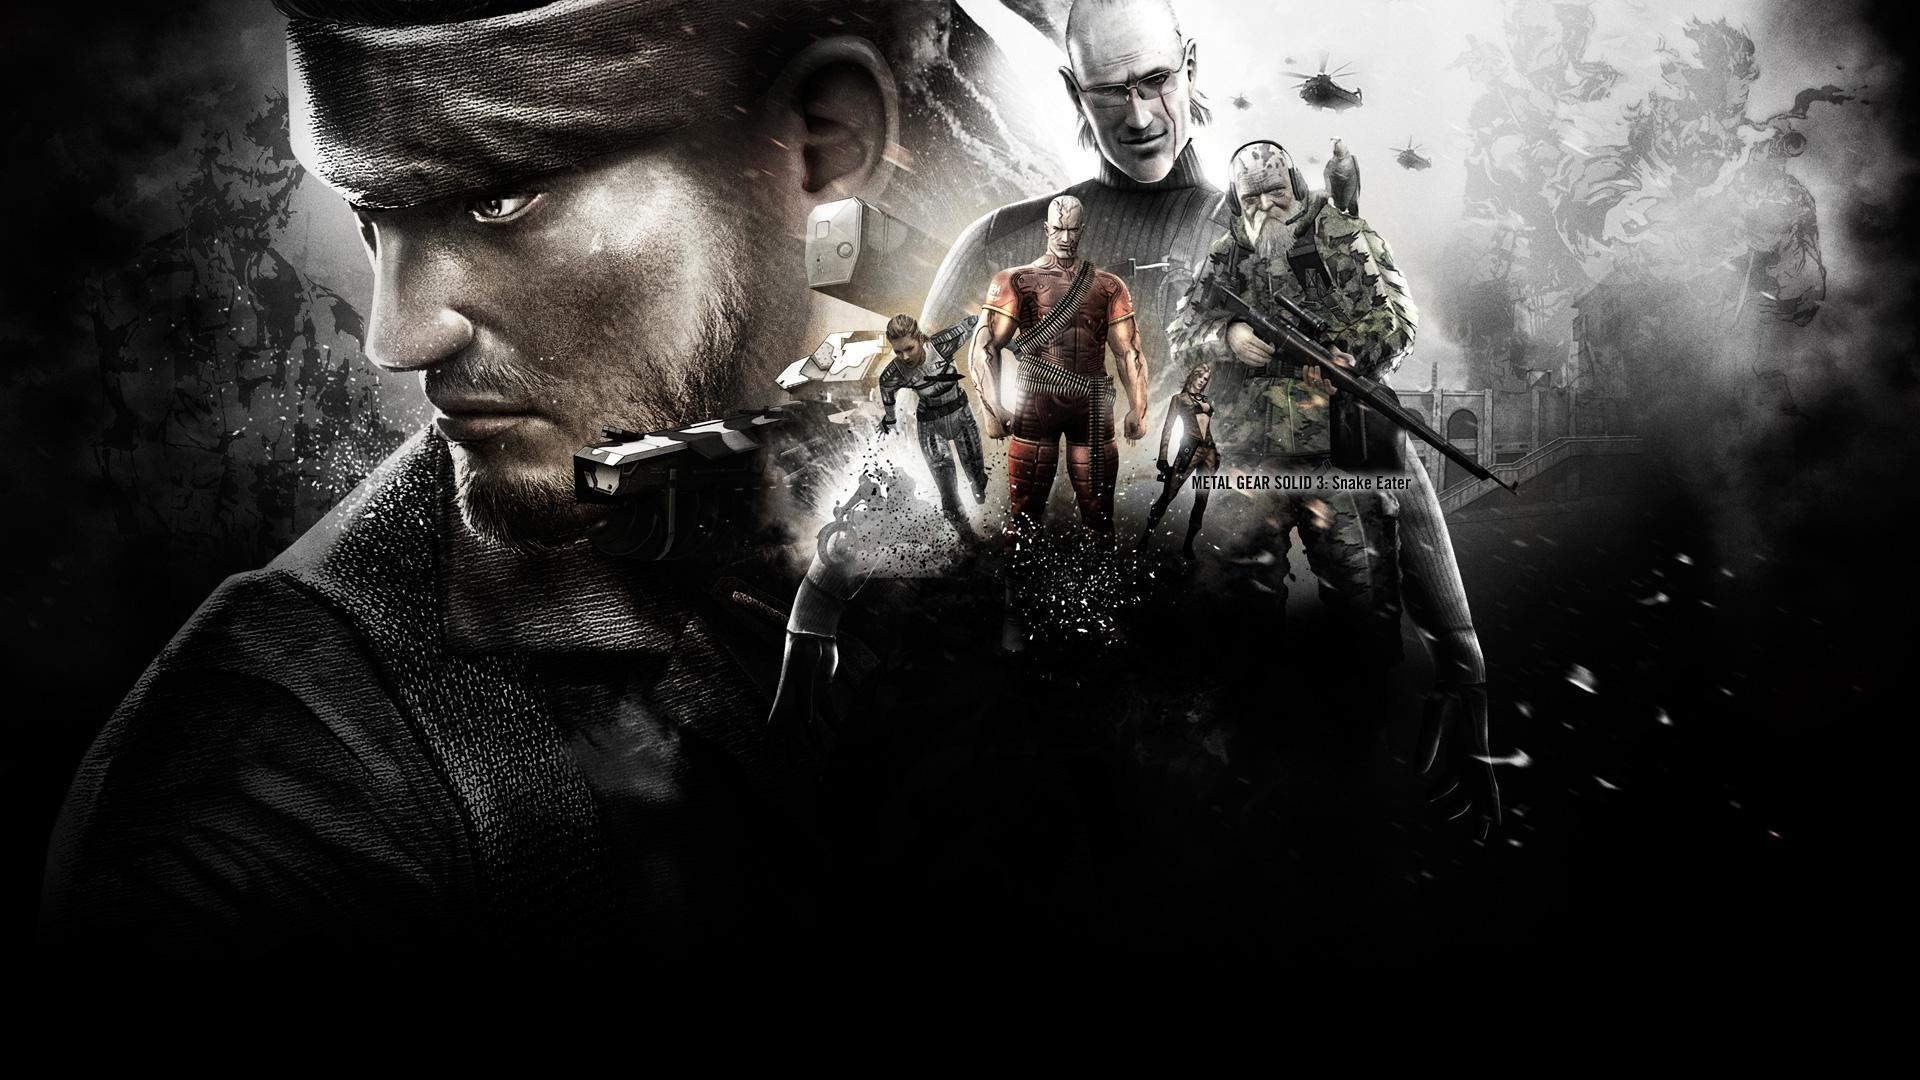 Metal gear solid 3 wallpapers wallpaper cave for Wallpaper three